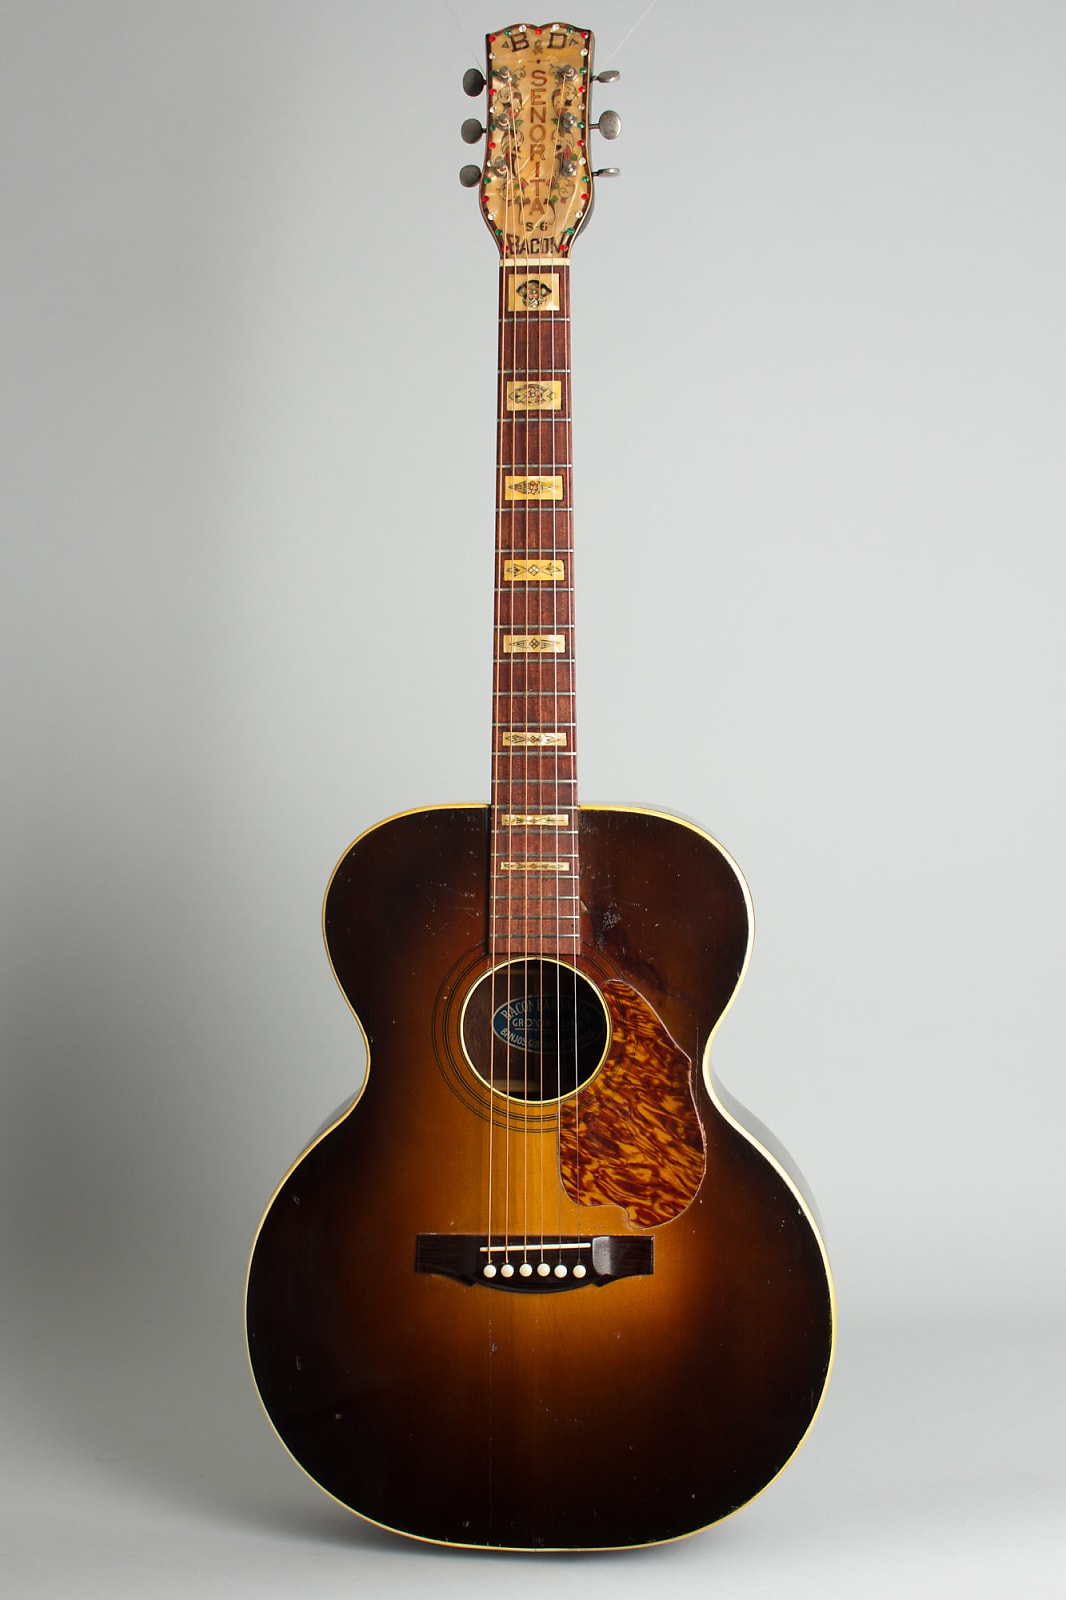 Bacon & Day  Senorita S-6 Previously Owned by Steely Dan's Walter Becker Flat Top Acoustic Guitar (1935), ser. #1019, black hard shell case.